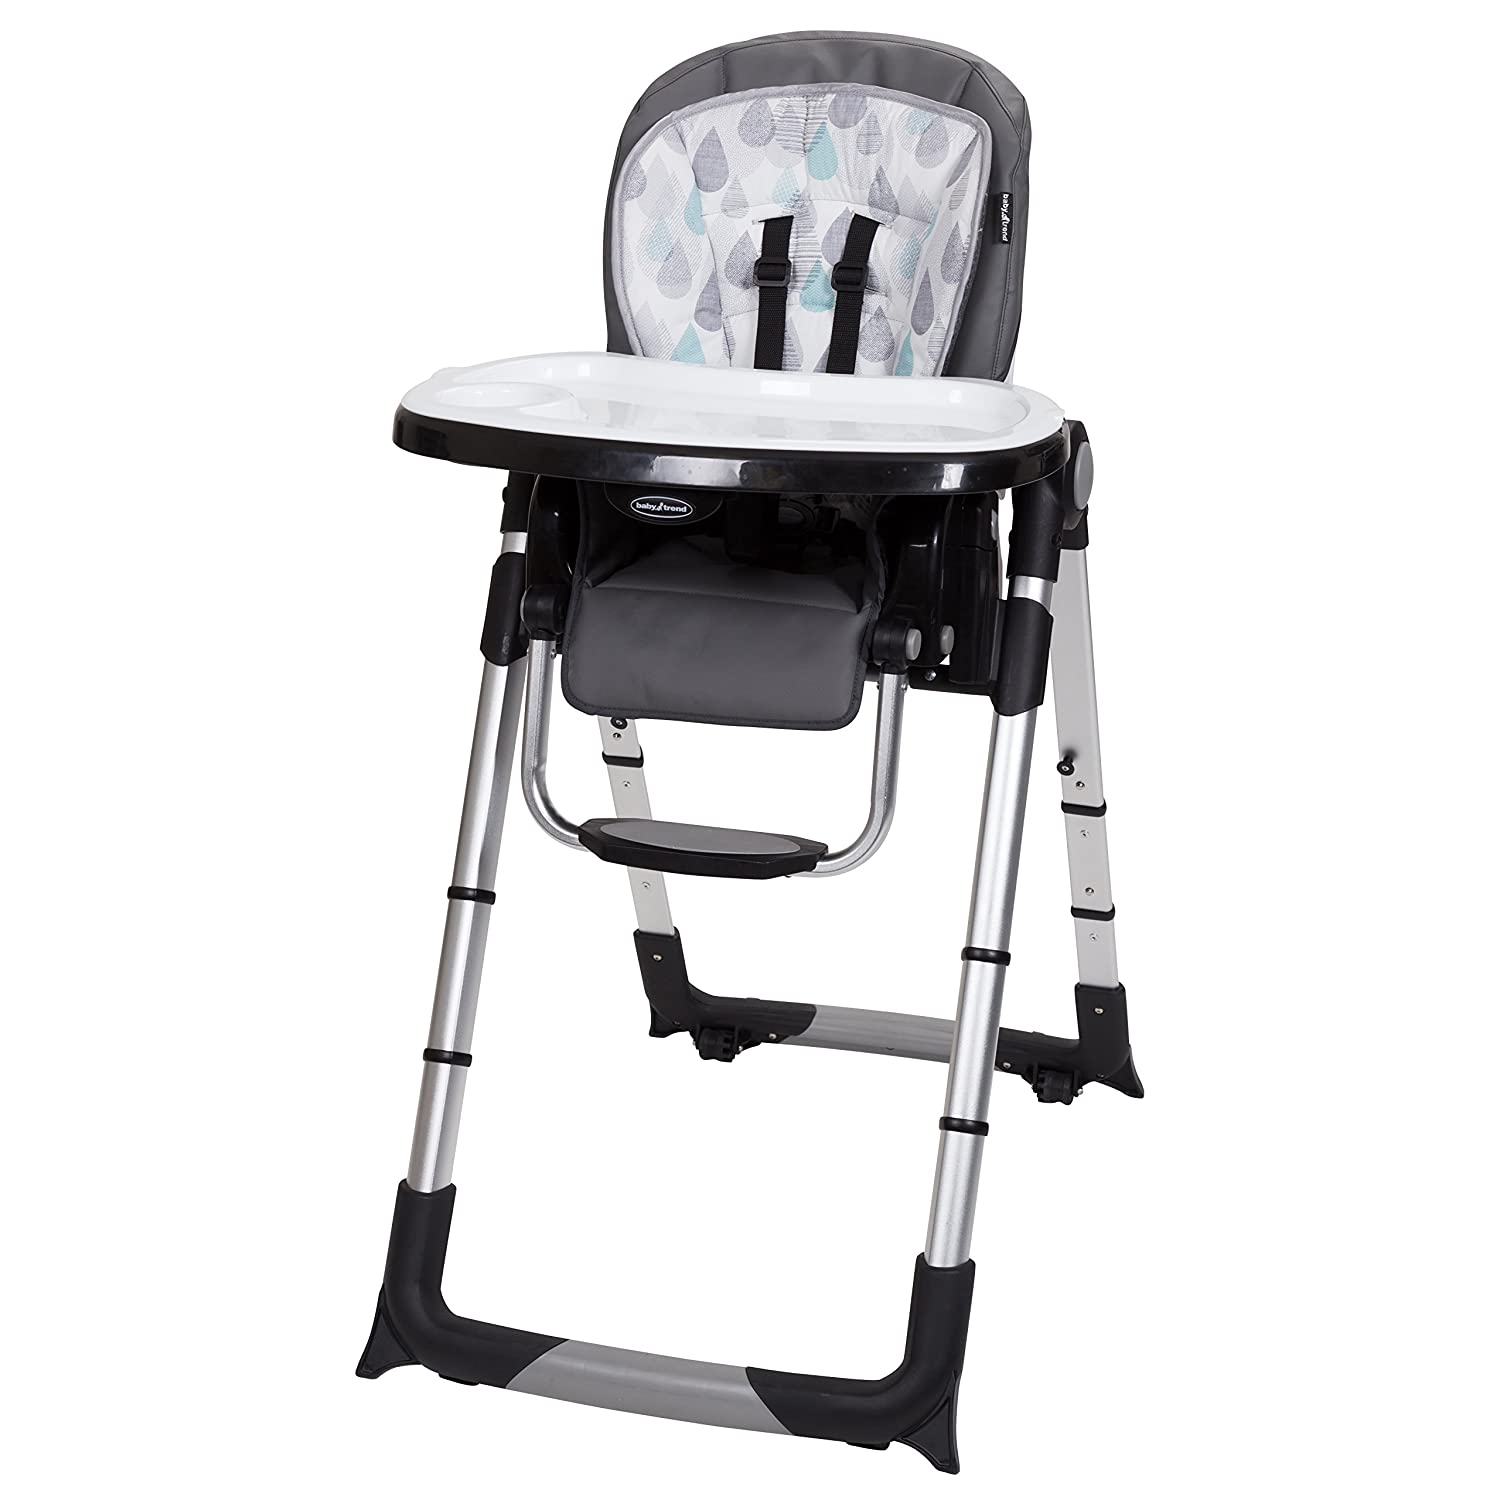 Drip Drop Blue NEW Baby Trend Go-Lite 3-in-1 Feeding Center